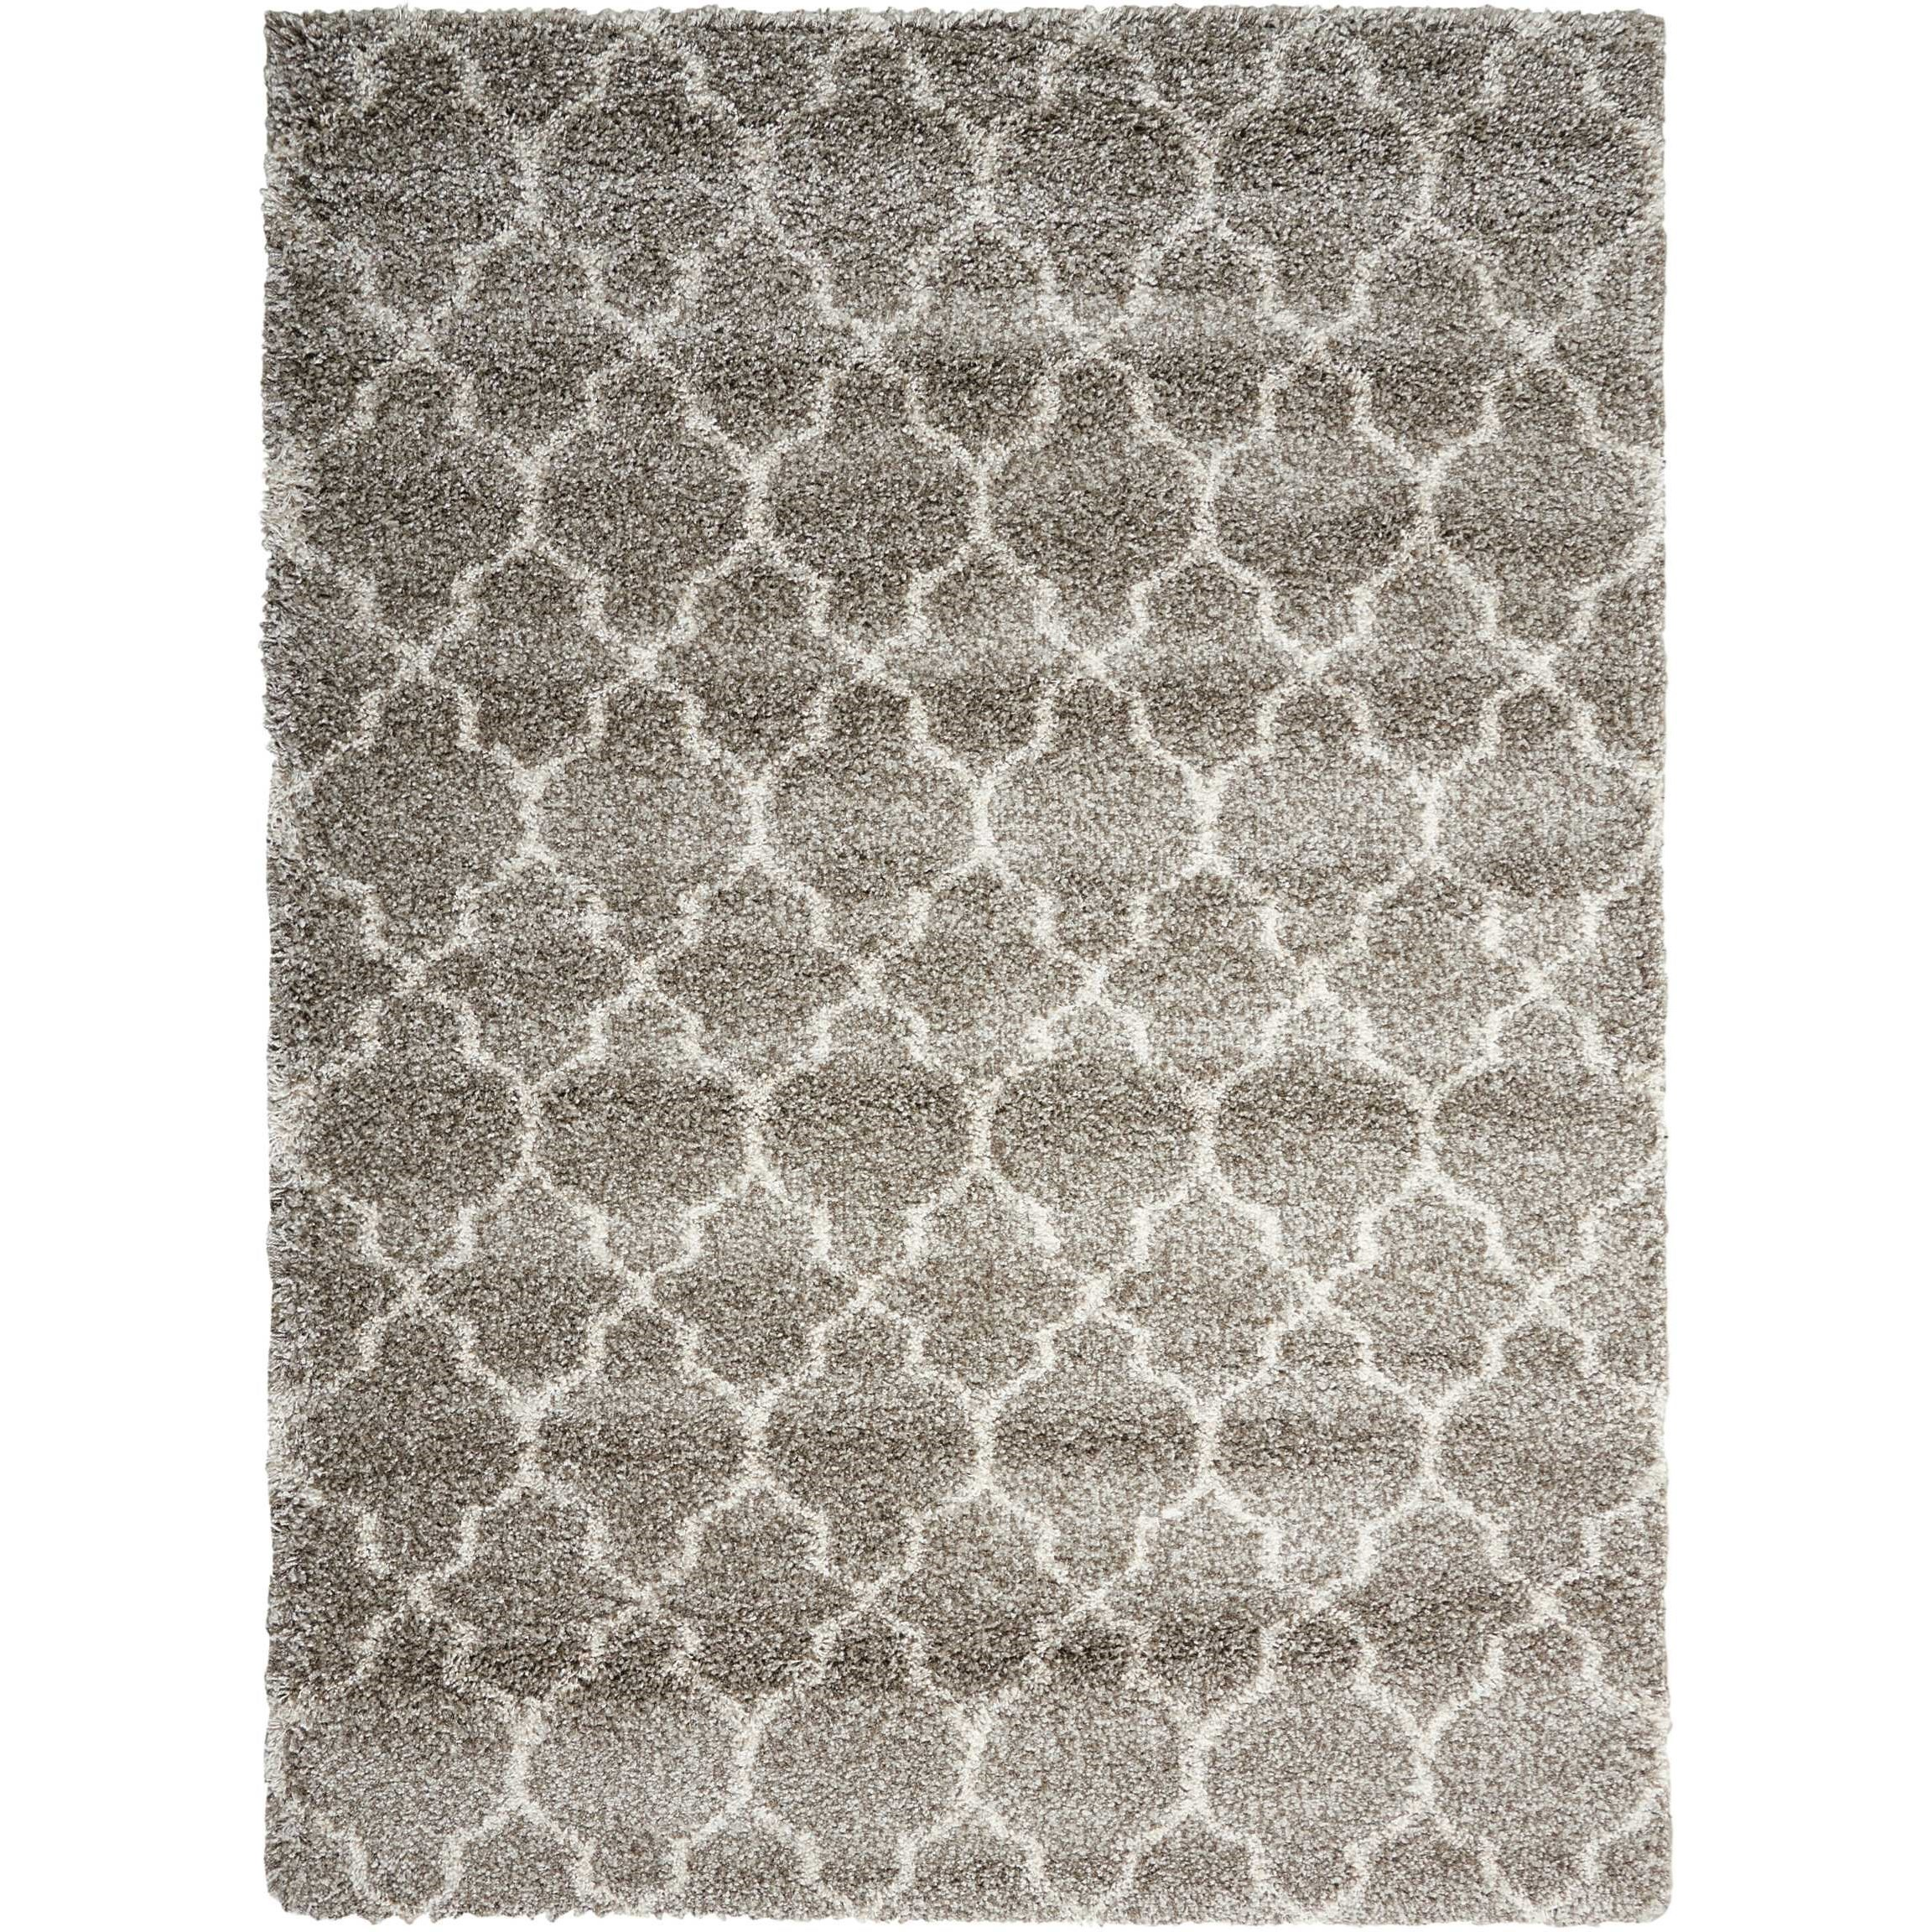 "Amore 5'3"" x 7'5"" Stone Rectangle Rug by Nourison at Home Collections Furniture"